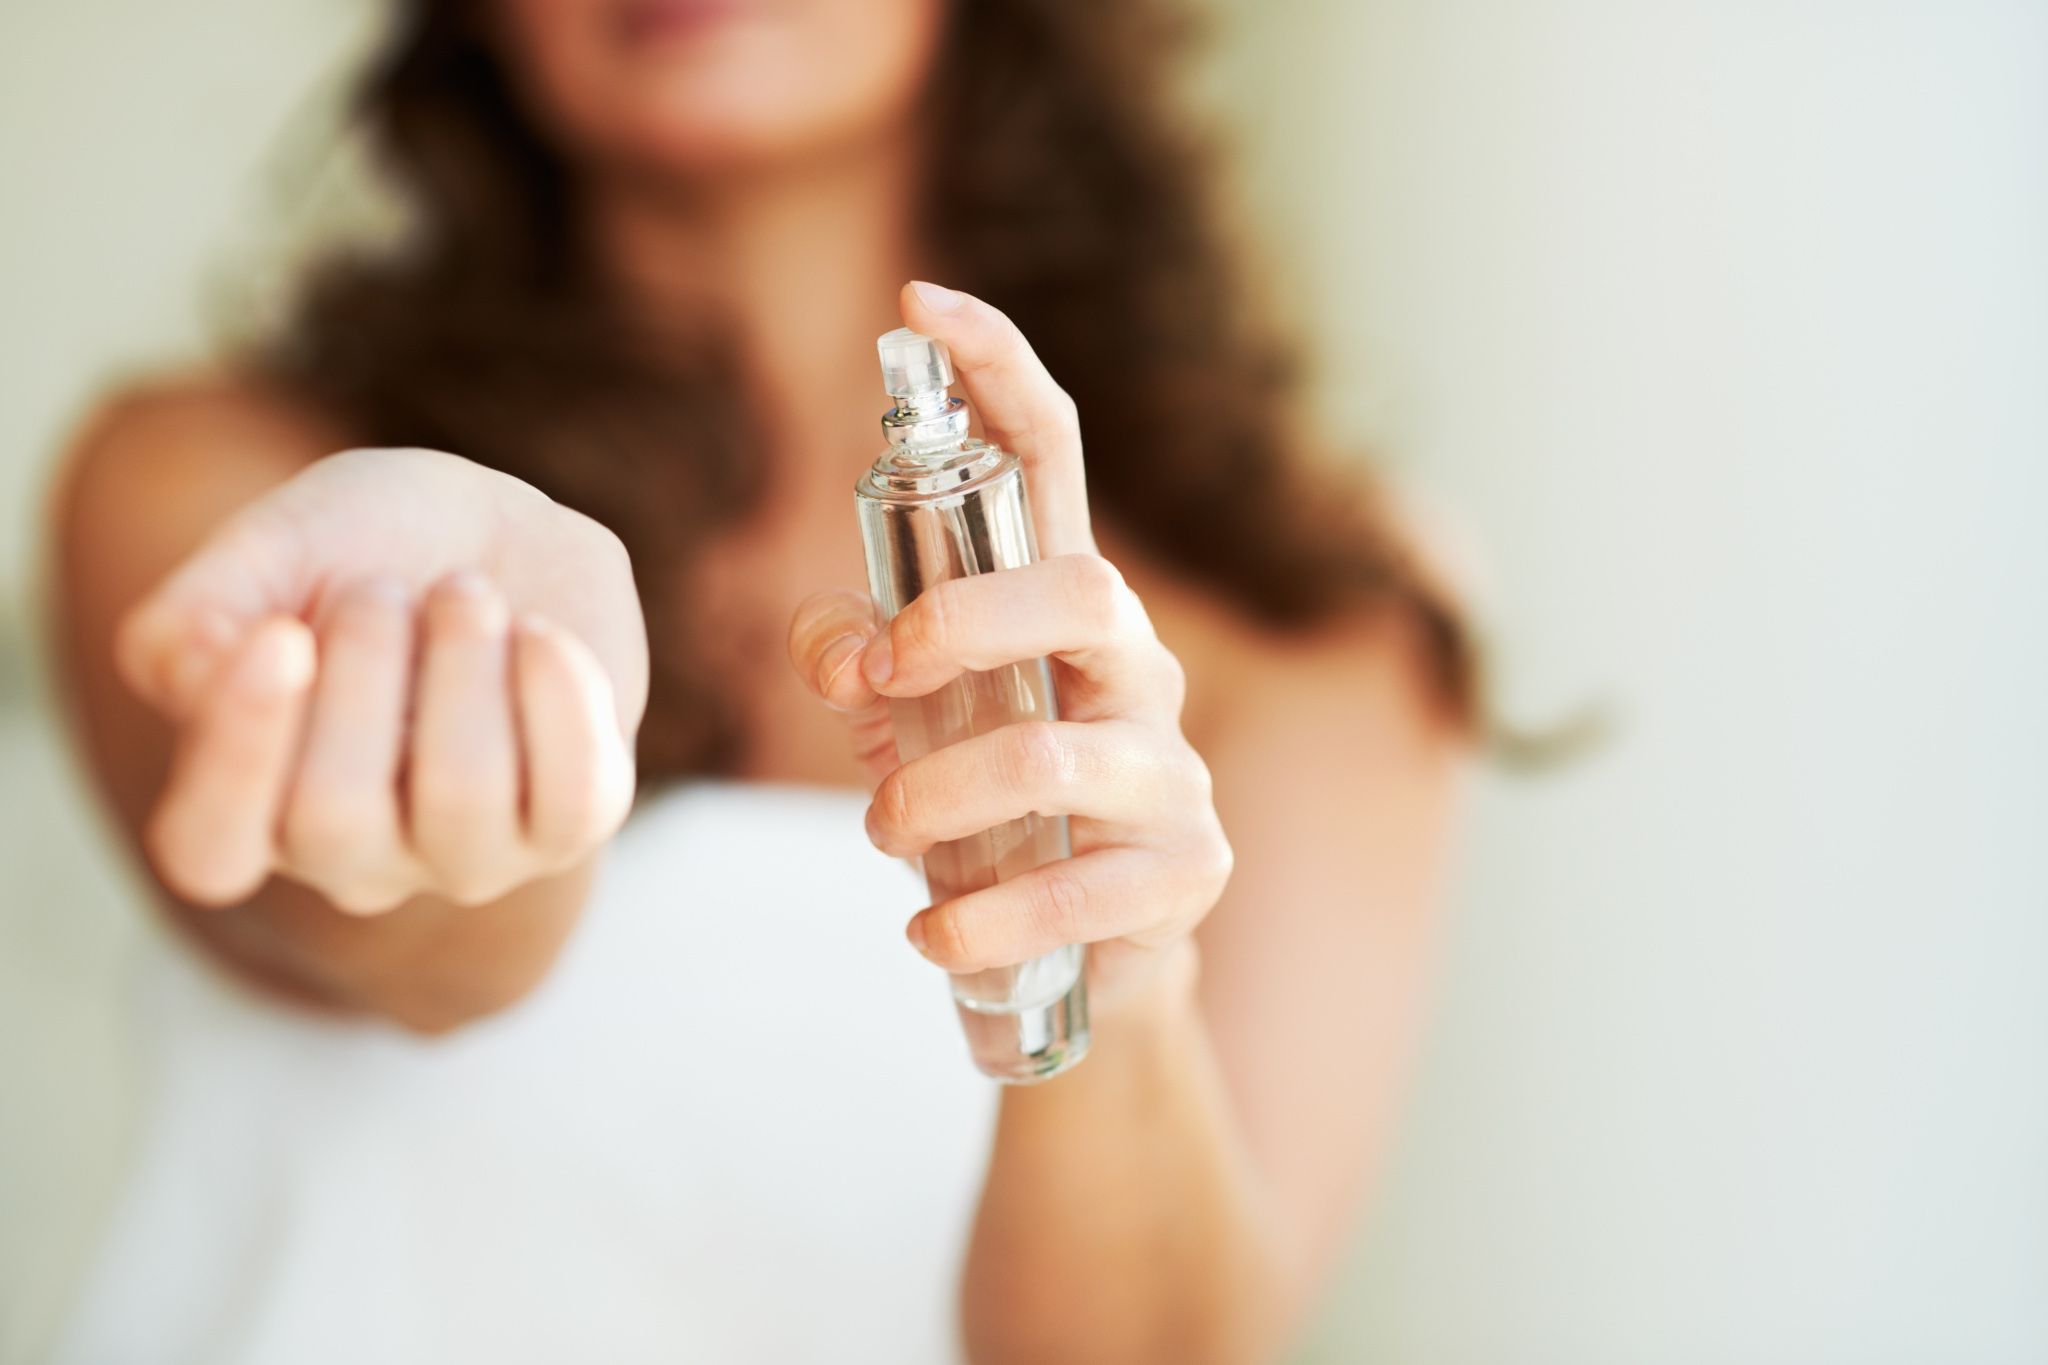 Person using fragrance perfume